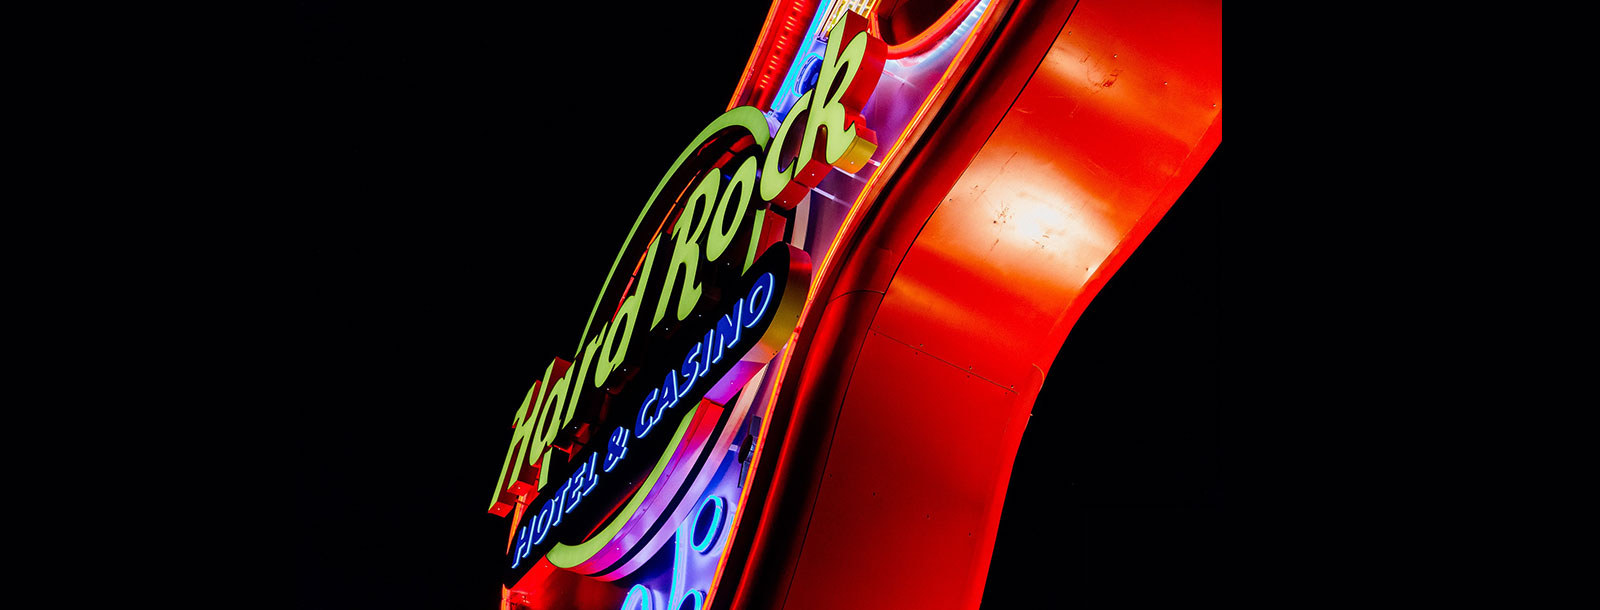 hard rock sioux city photo gallery